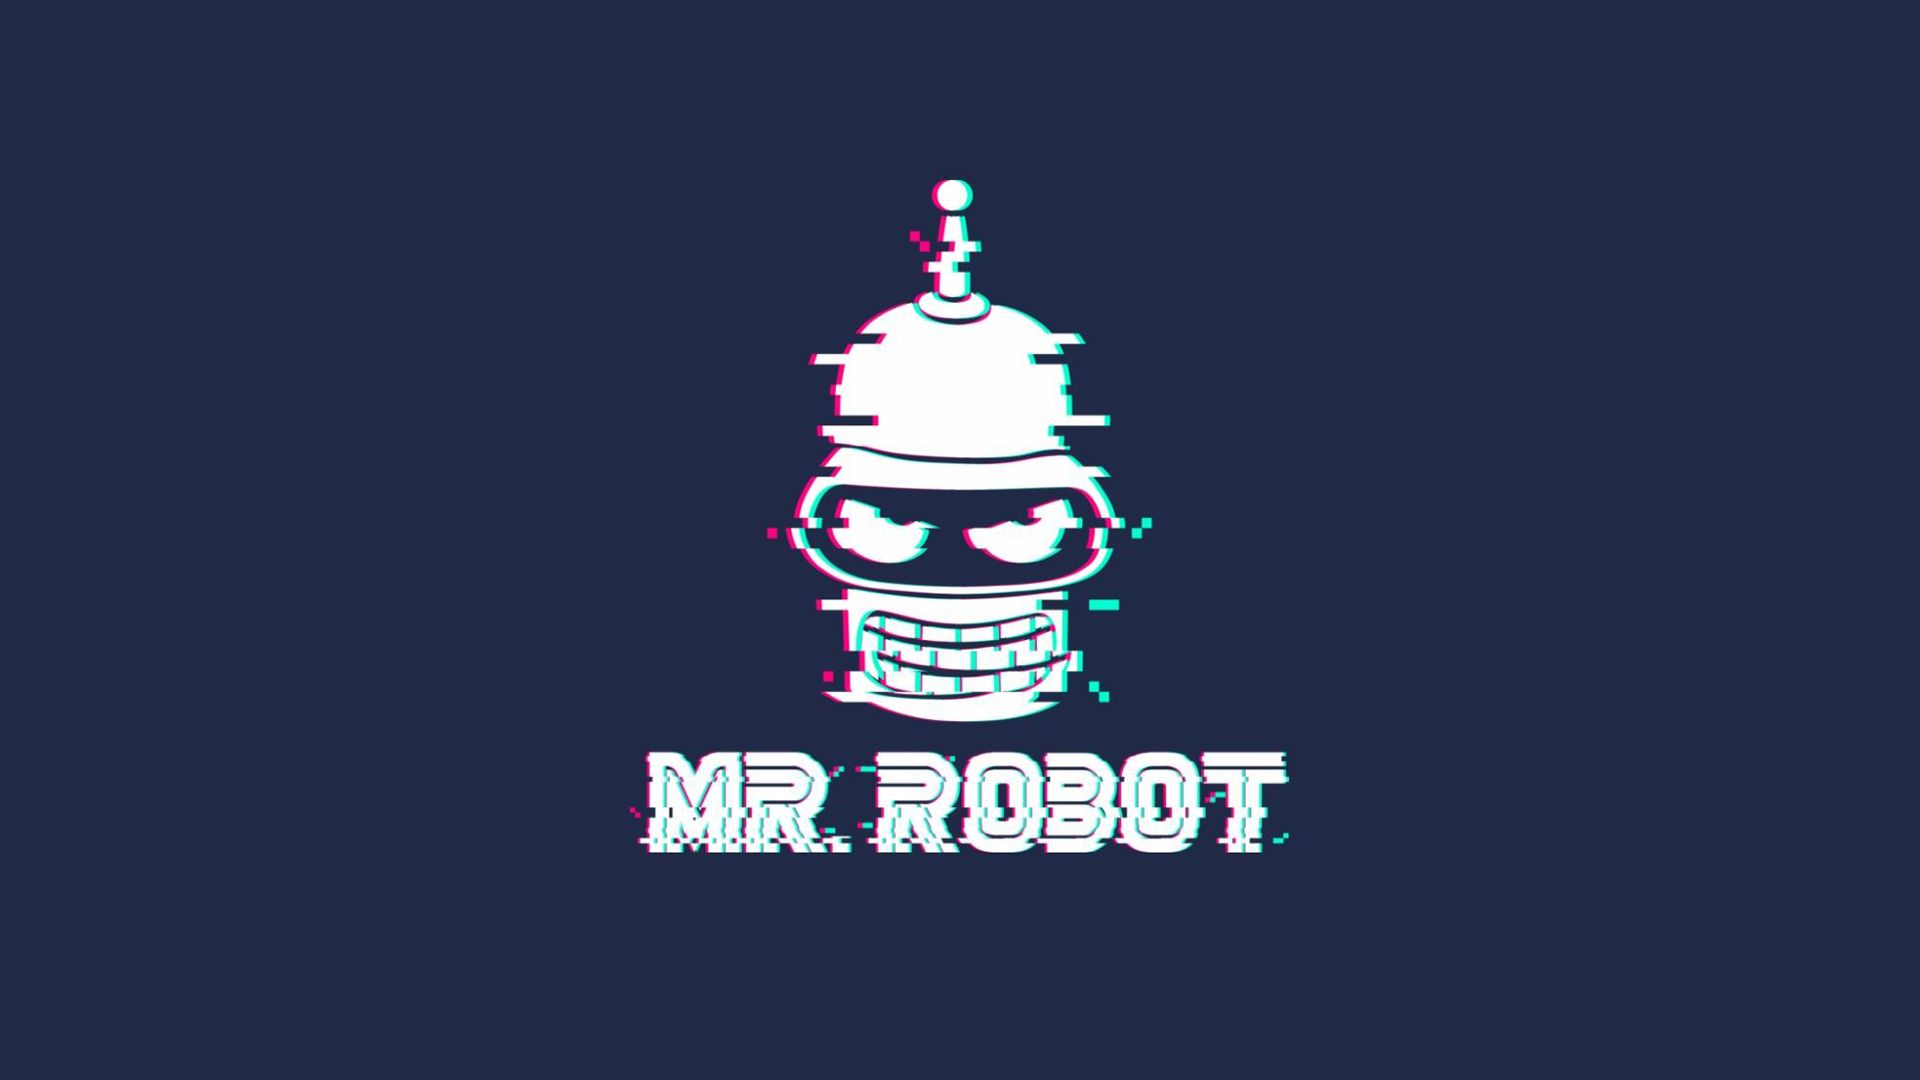 Mr Robot Wallpapers Top Free Mr Robot Backgrounds